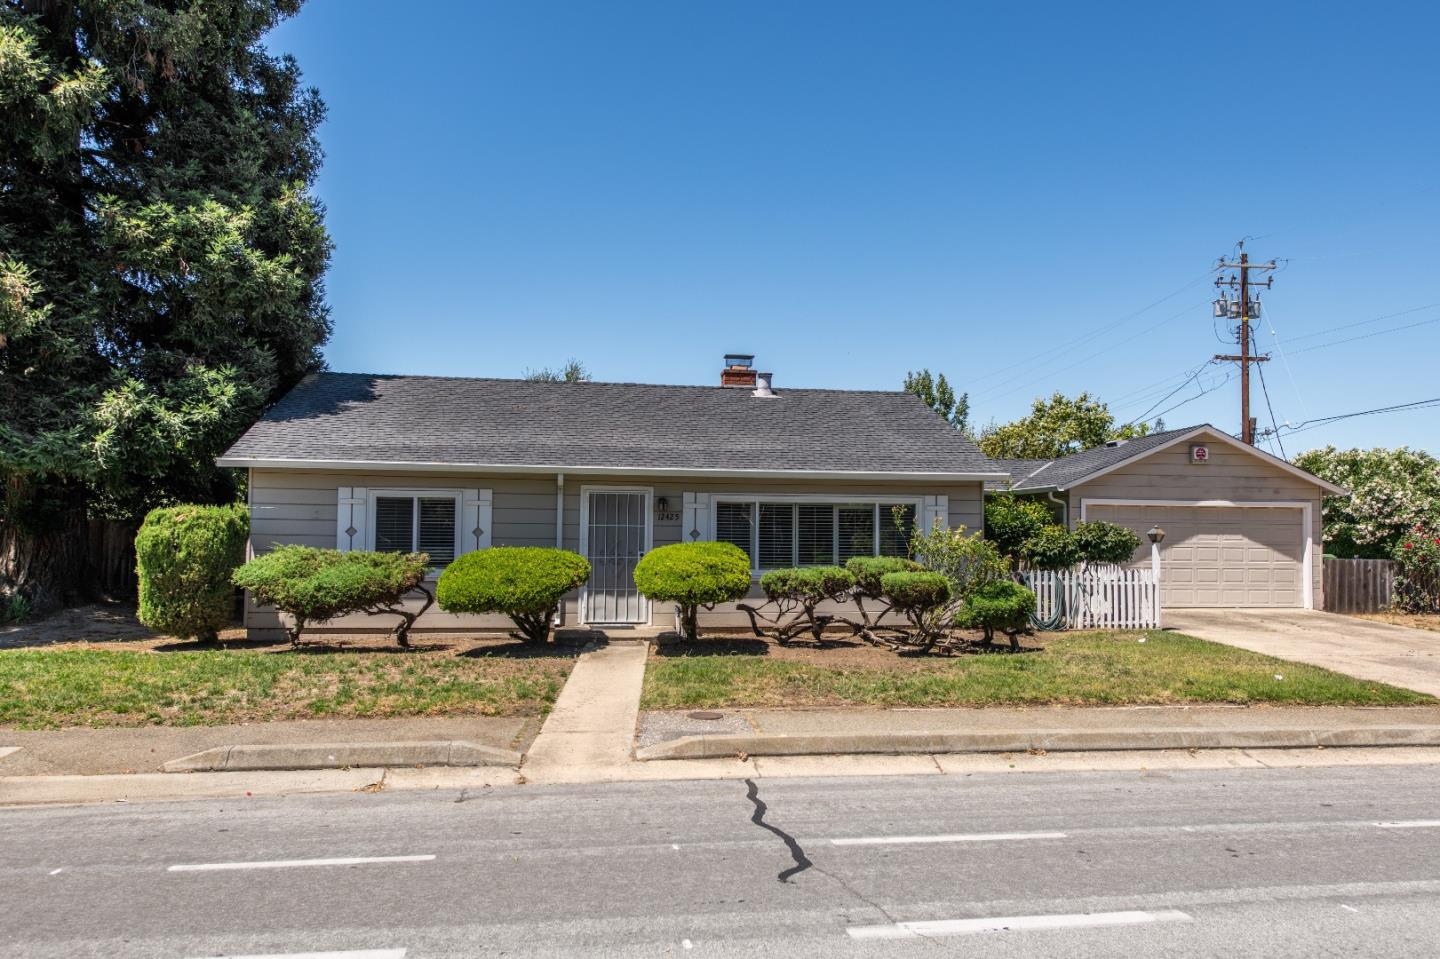 This 1,260 sq ft home offers 3 bedrooms and 1.5 bathrooms. Perfect opportunity to buy a Saratoga property that you can remodel or tear down and build your dream home. Close to Saratoga shopping, downtown Campbell and commuter highways.